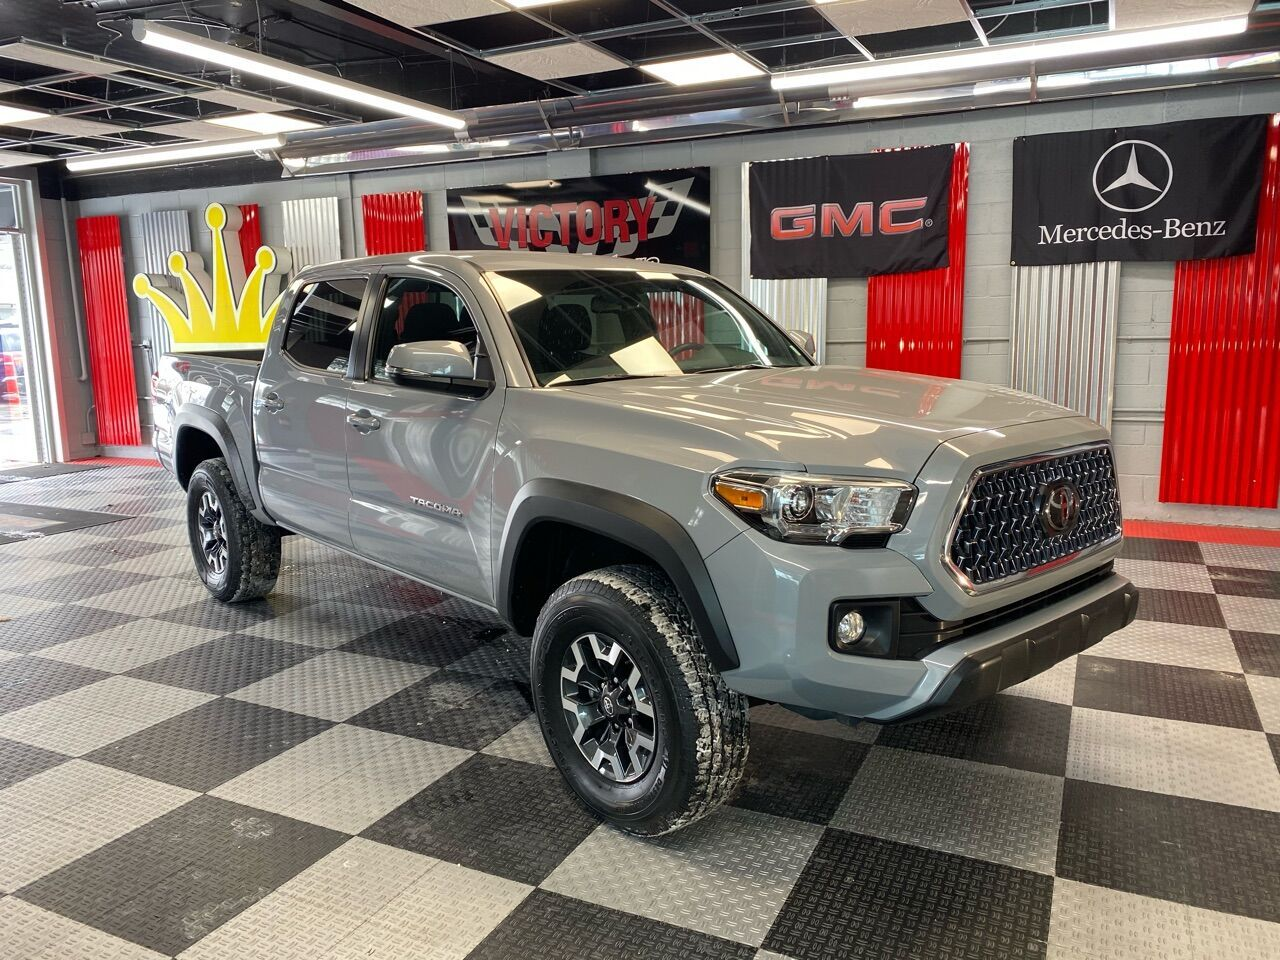 2019 Toyota Tacoma TRD Off Road 4x4 4dr Double Cab 5.0 ft SB 6A Royal Oak MI